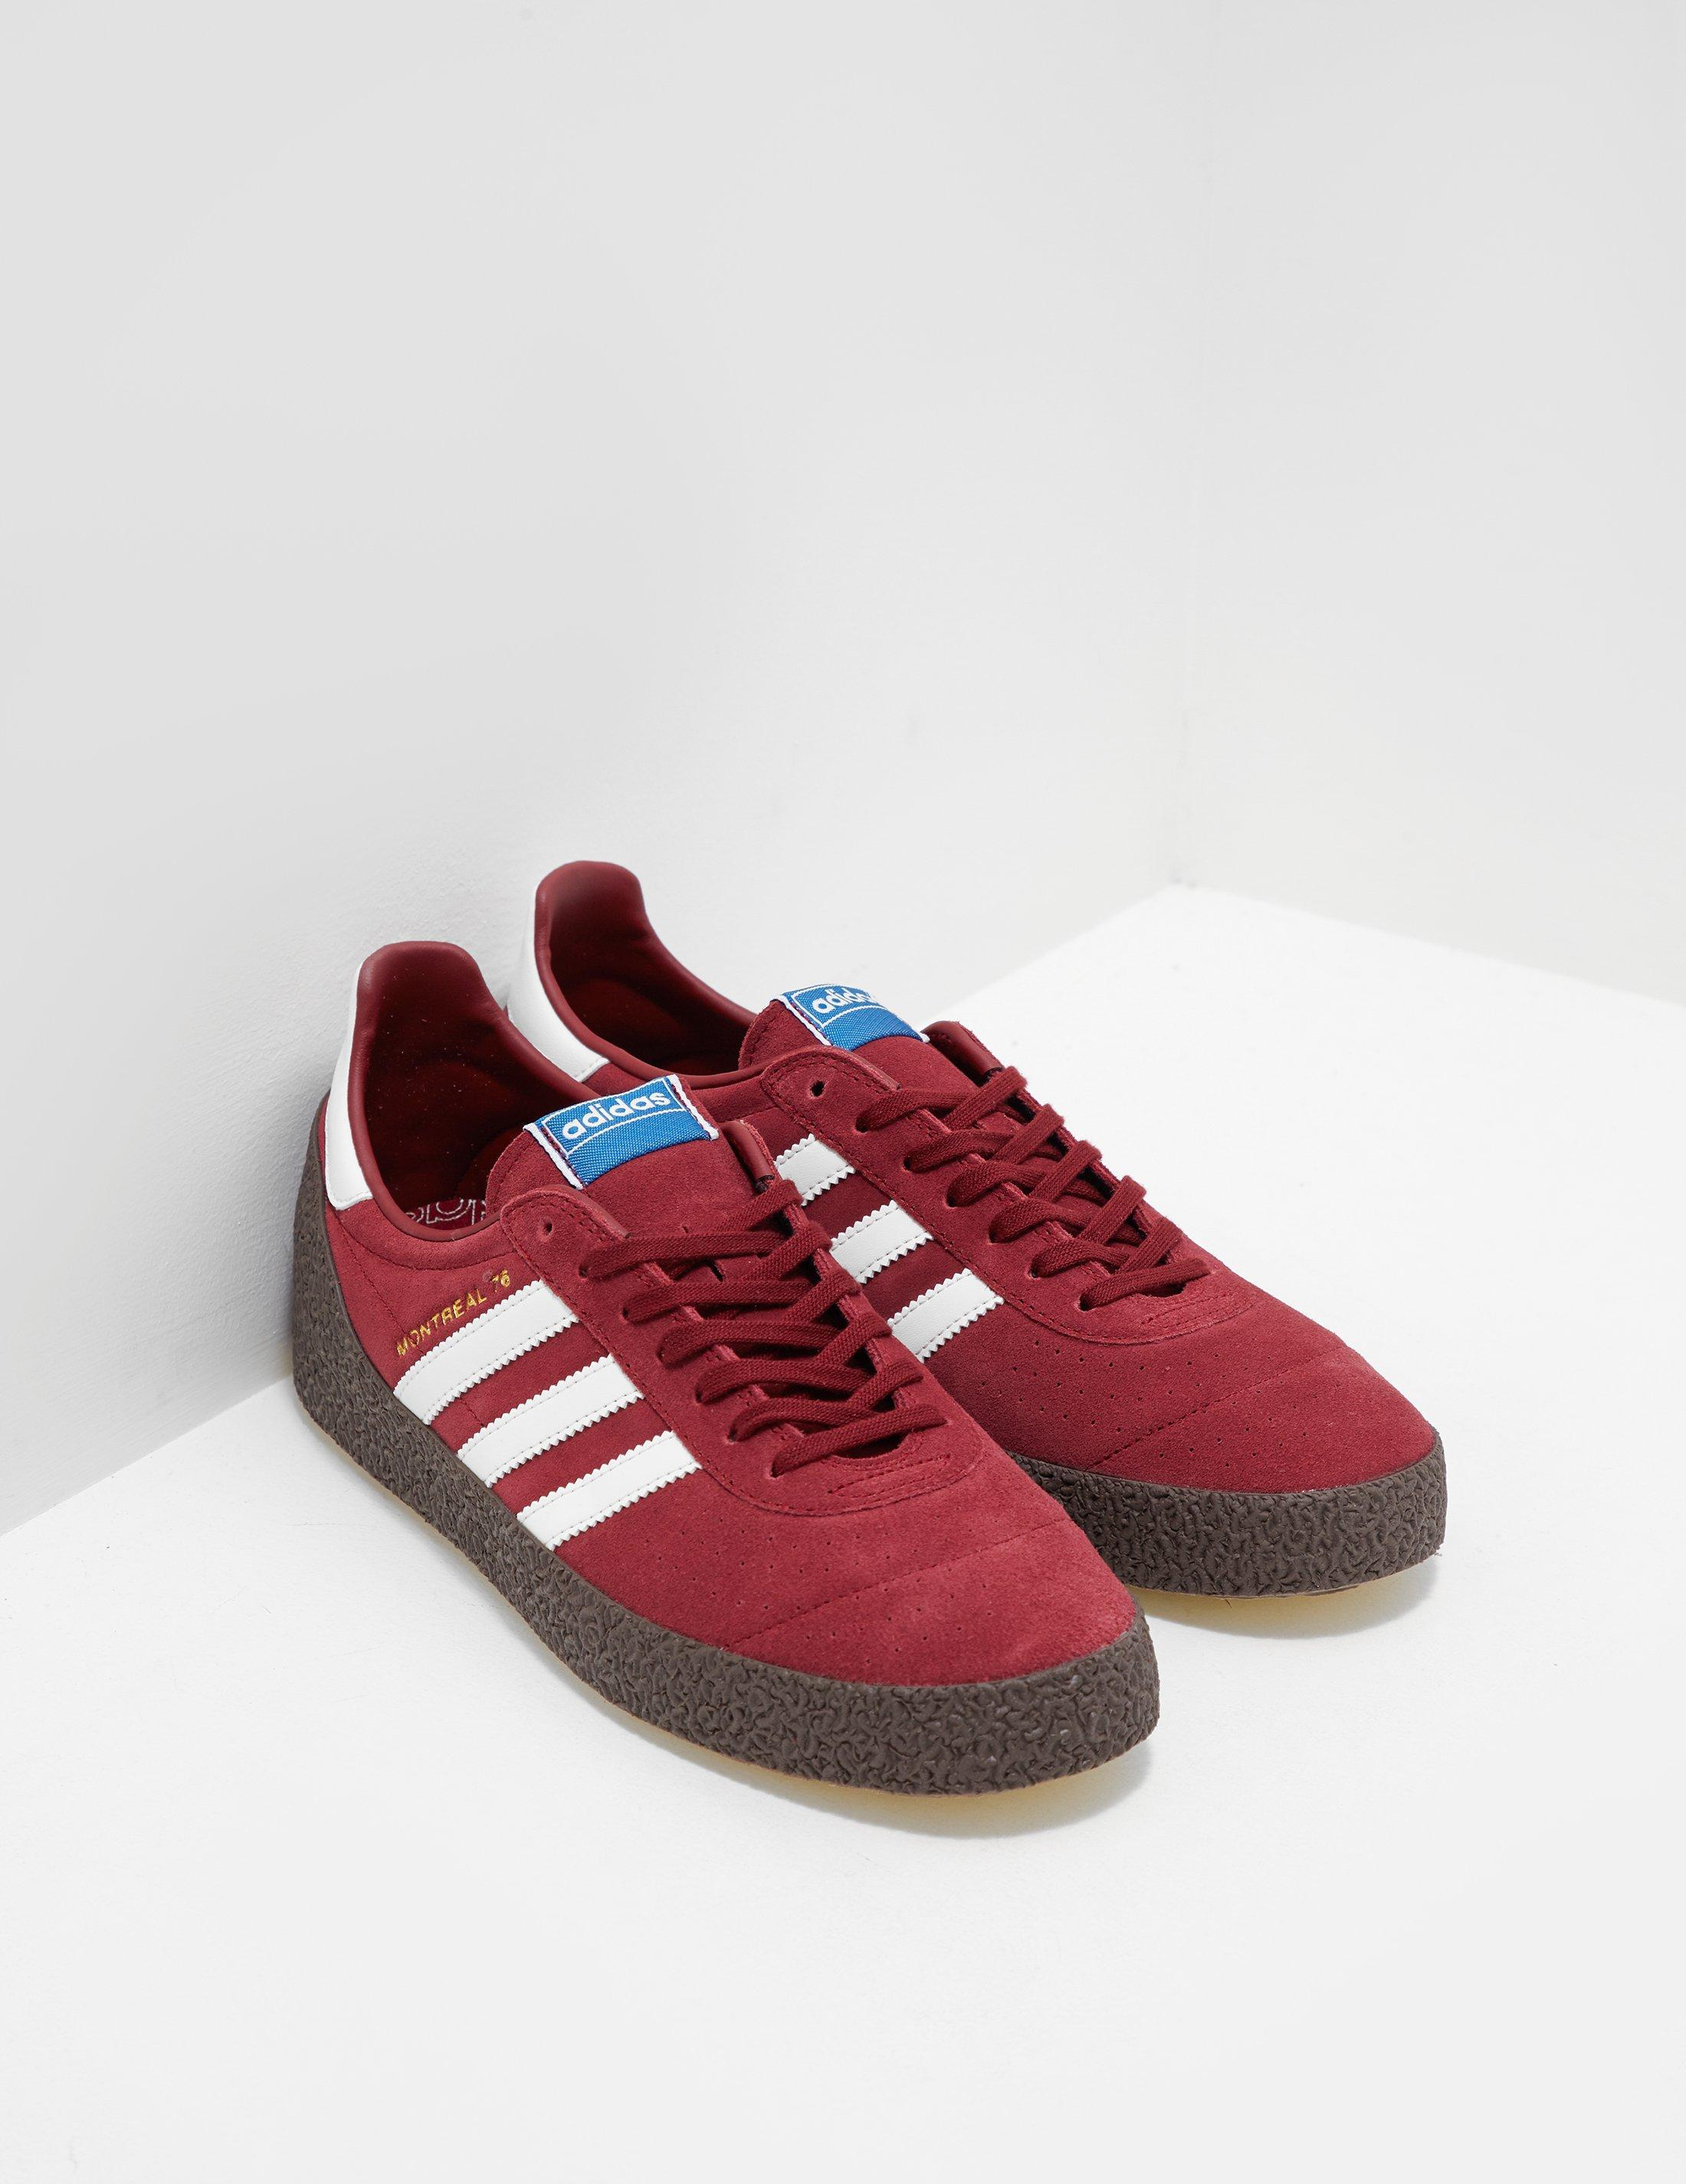 adidas Originals Mens Montreal 76 Red in Red for Men - Lyst 91c3245a5ee7